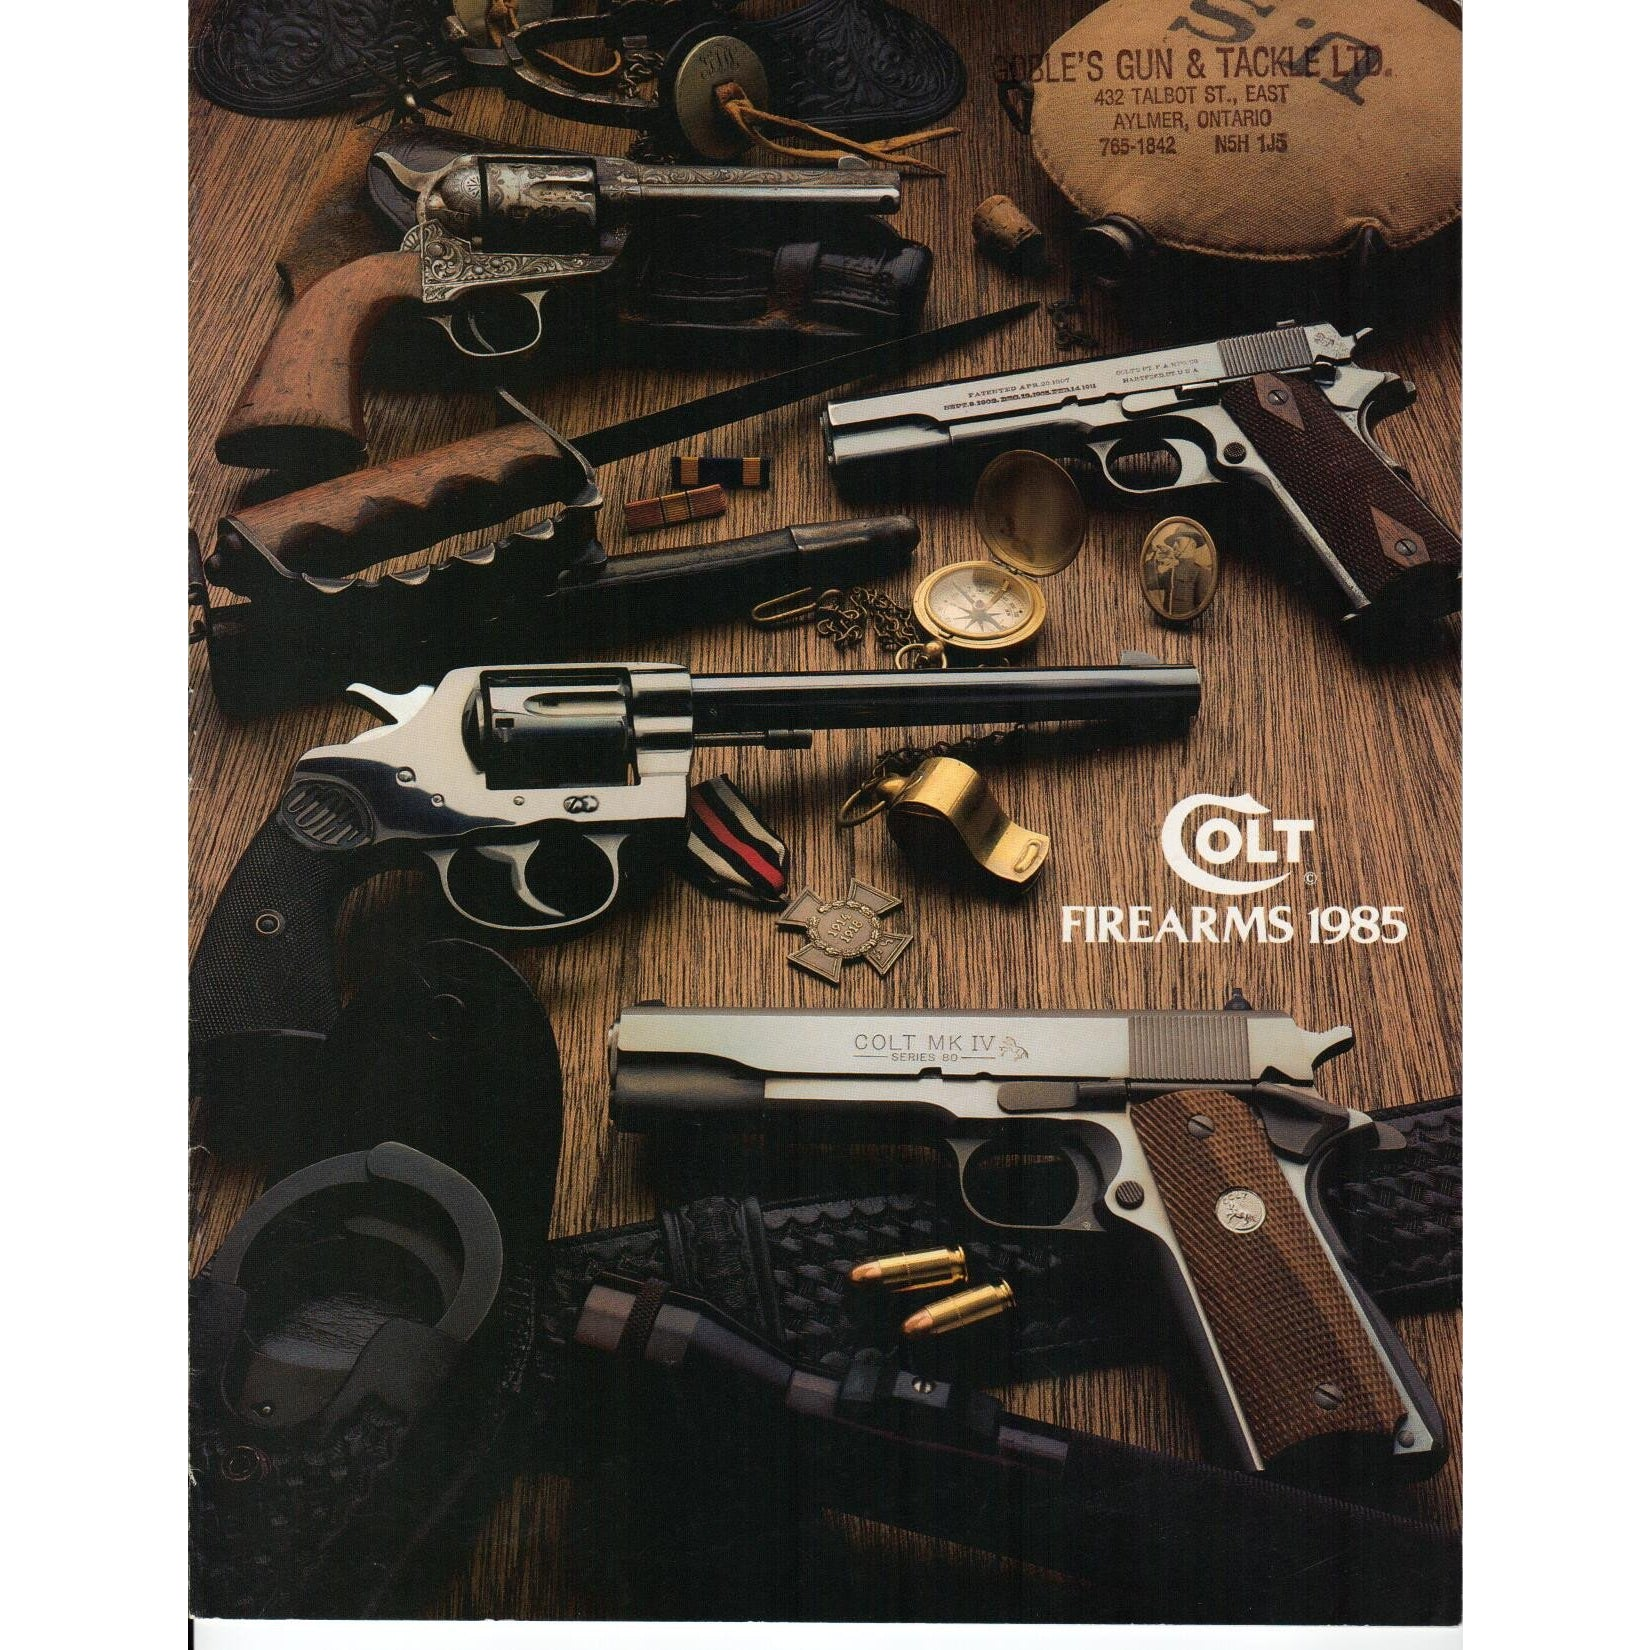 Colt Firearms 1985 Catalogue,Catalogues & Brochures- Canada Brass